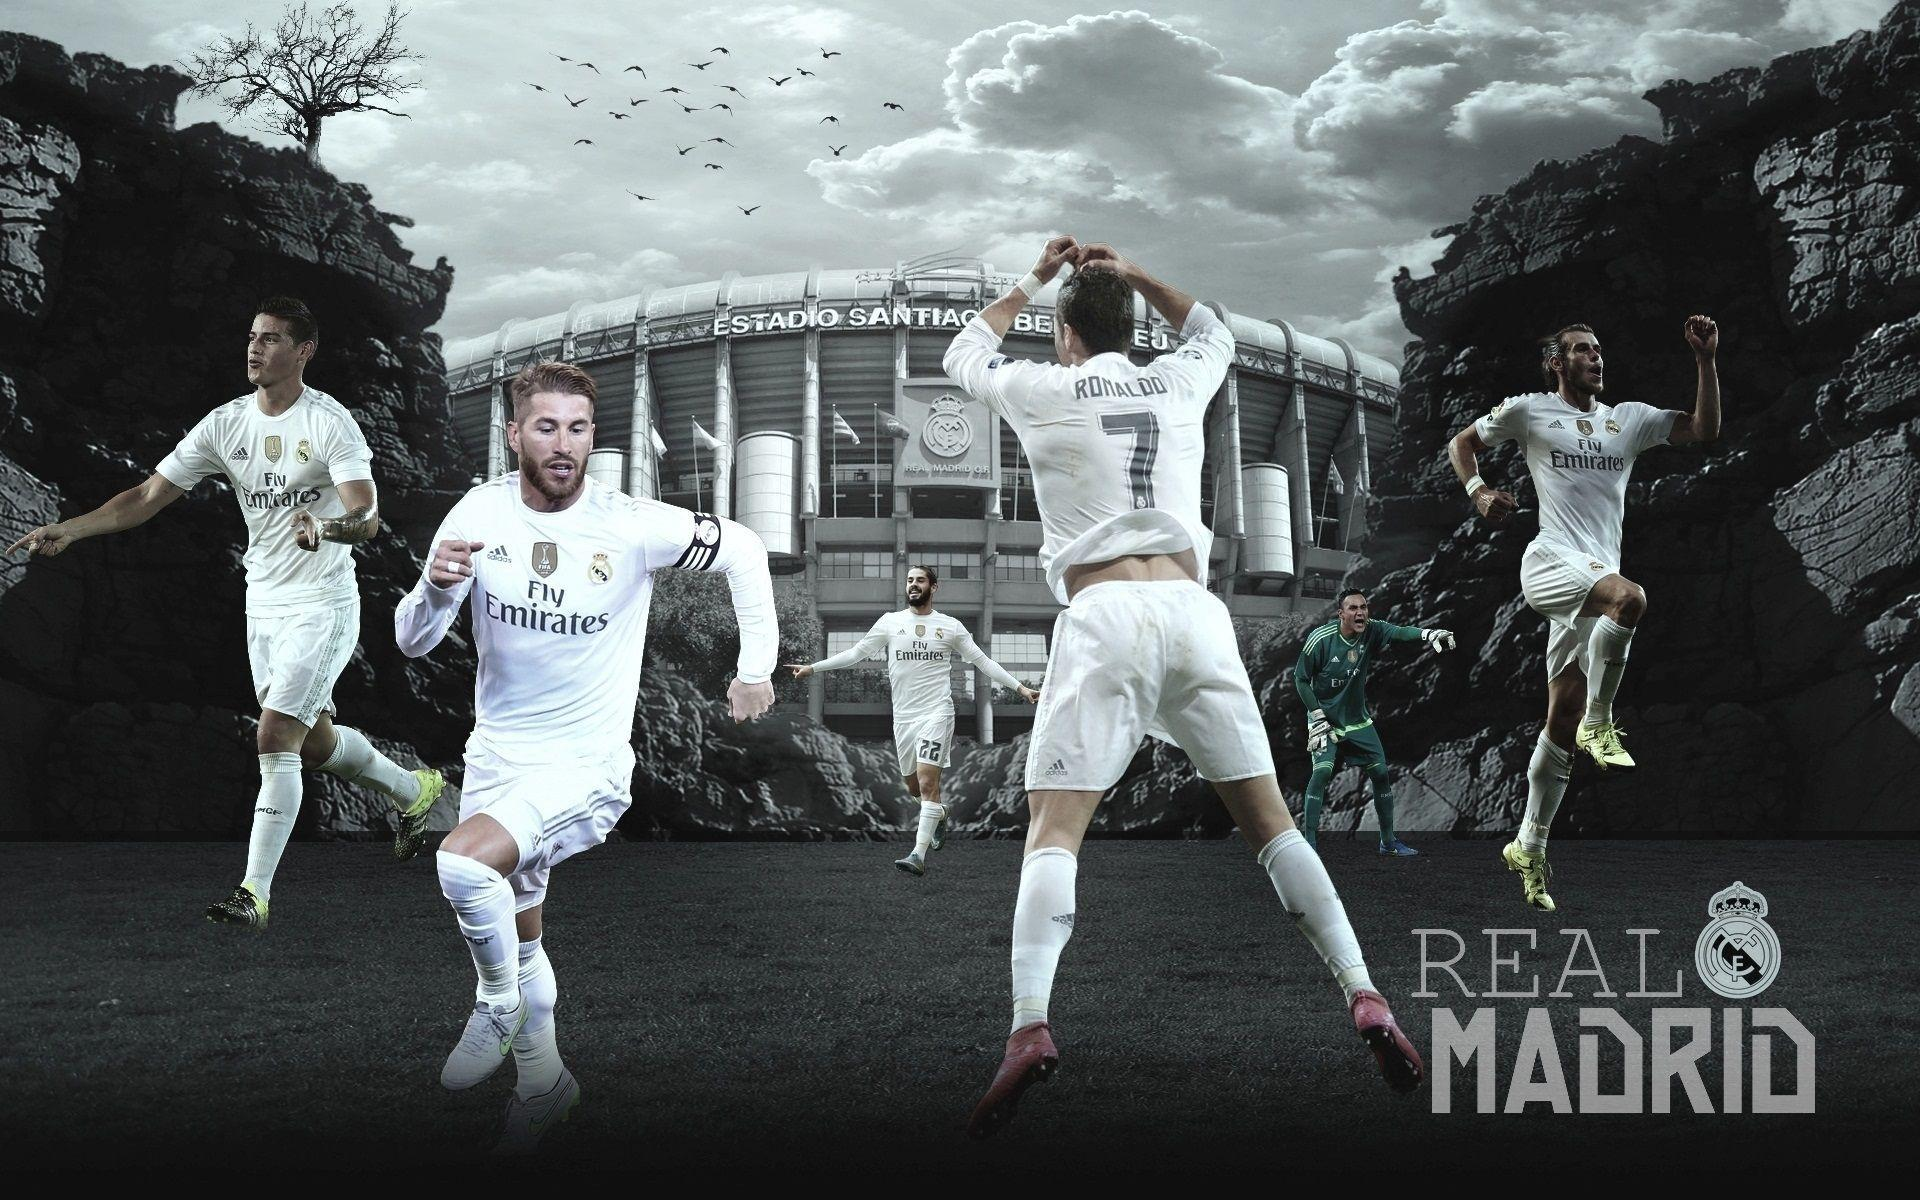 Real Madrid Team HD Images - New HD Images